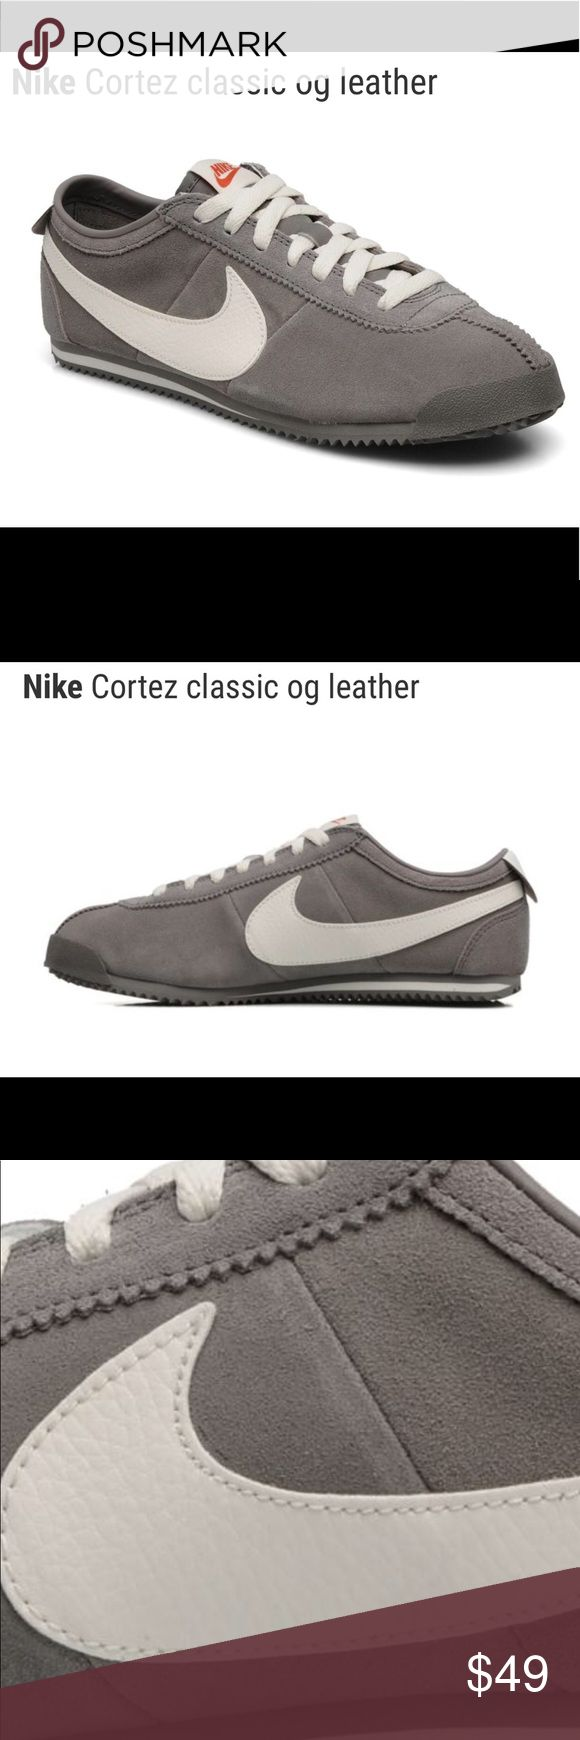 Nike leather men's Cortez grey Classic OG shoes Brand NEW NIKE LEATHER CORTEZ shoes with tags attached. Sharp sail grey with white swoosh and trim. Suede leather. Extremely comfortable shoes. See last photo of these style shoes being used in The Karate Kid movie with by Daniel Russo. Very hot style this year and hard to find!  (Original shoe box not included)  Retailed $60 Nike Shoes Sneakers